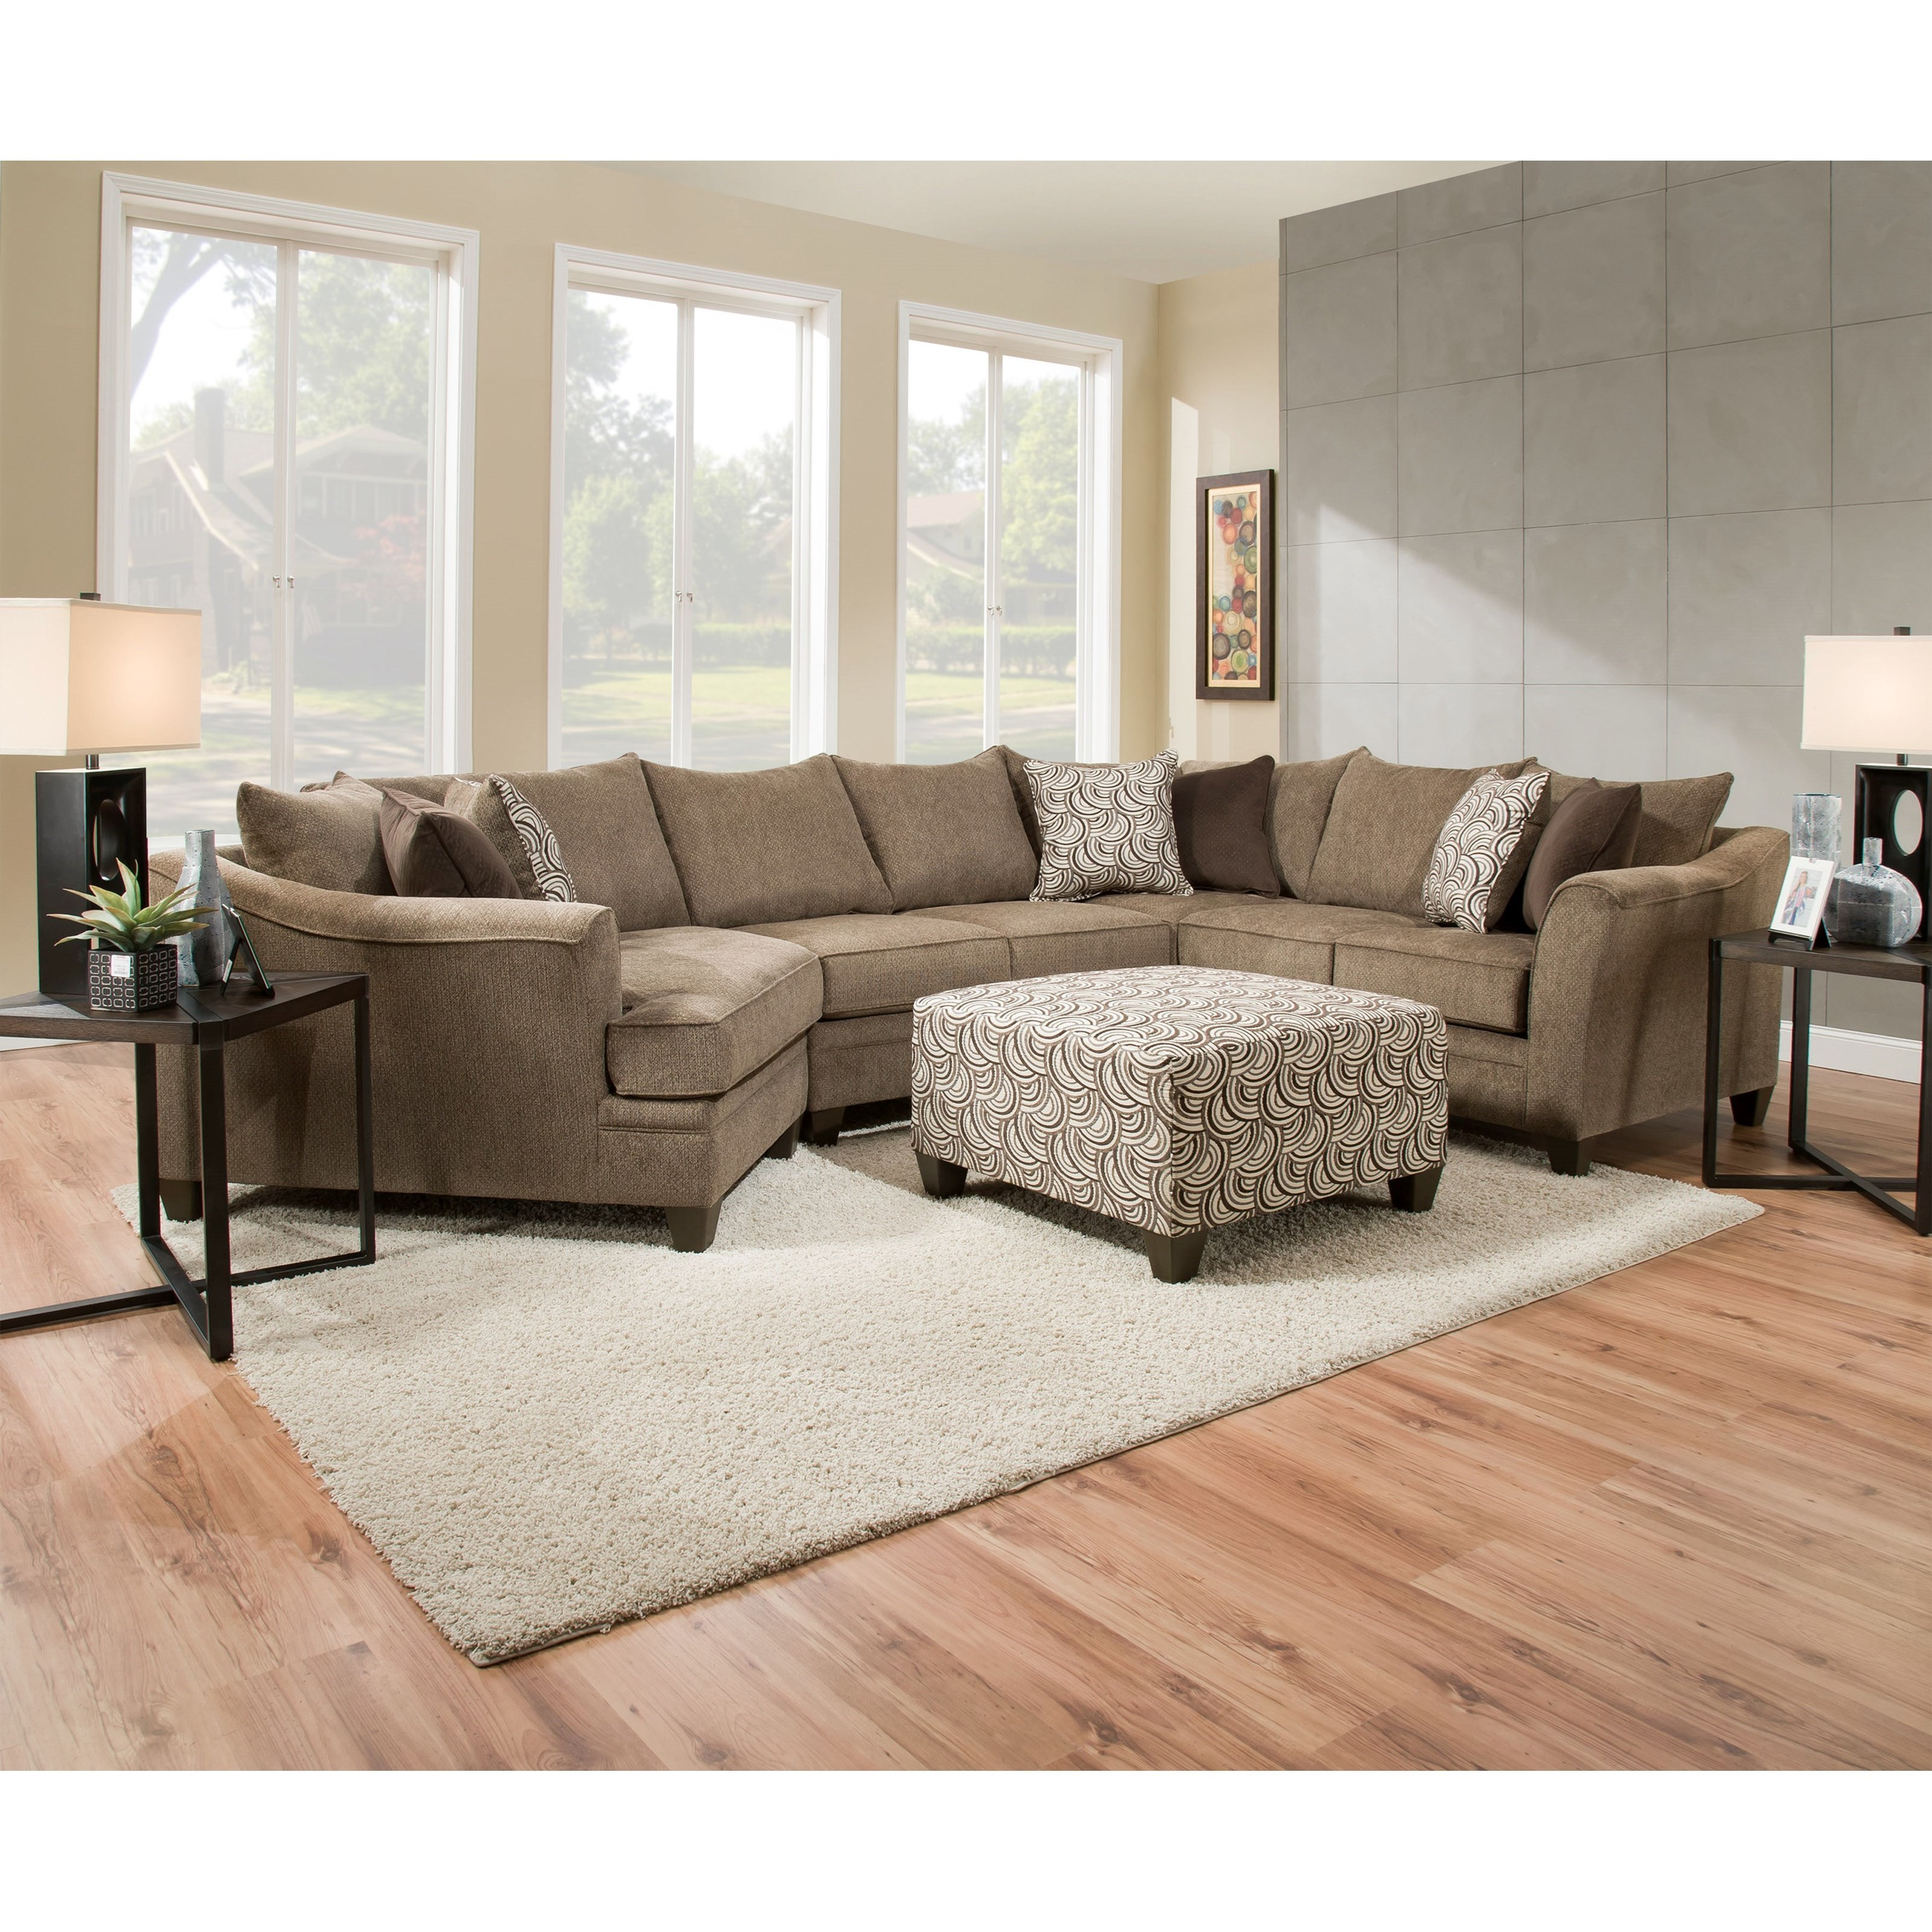 Superieur United Furniture Industries 6485Transitional Sectional Sofa